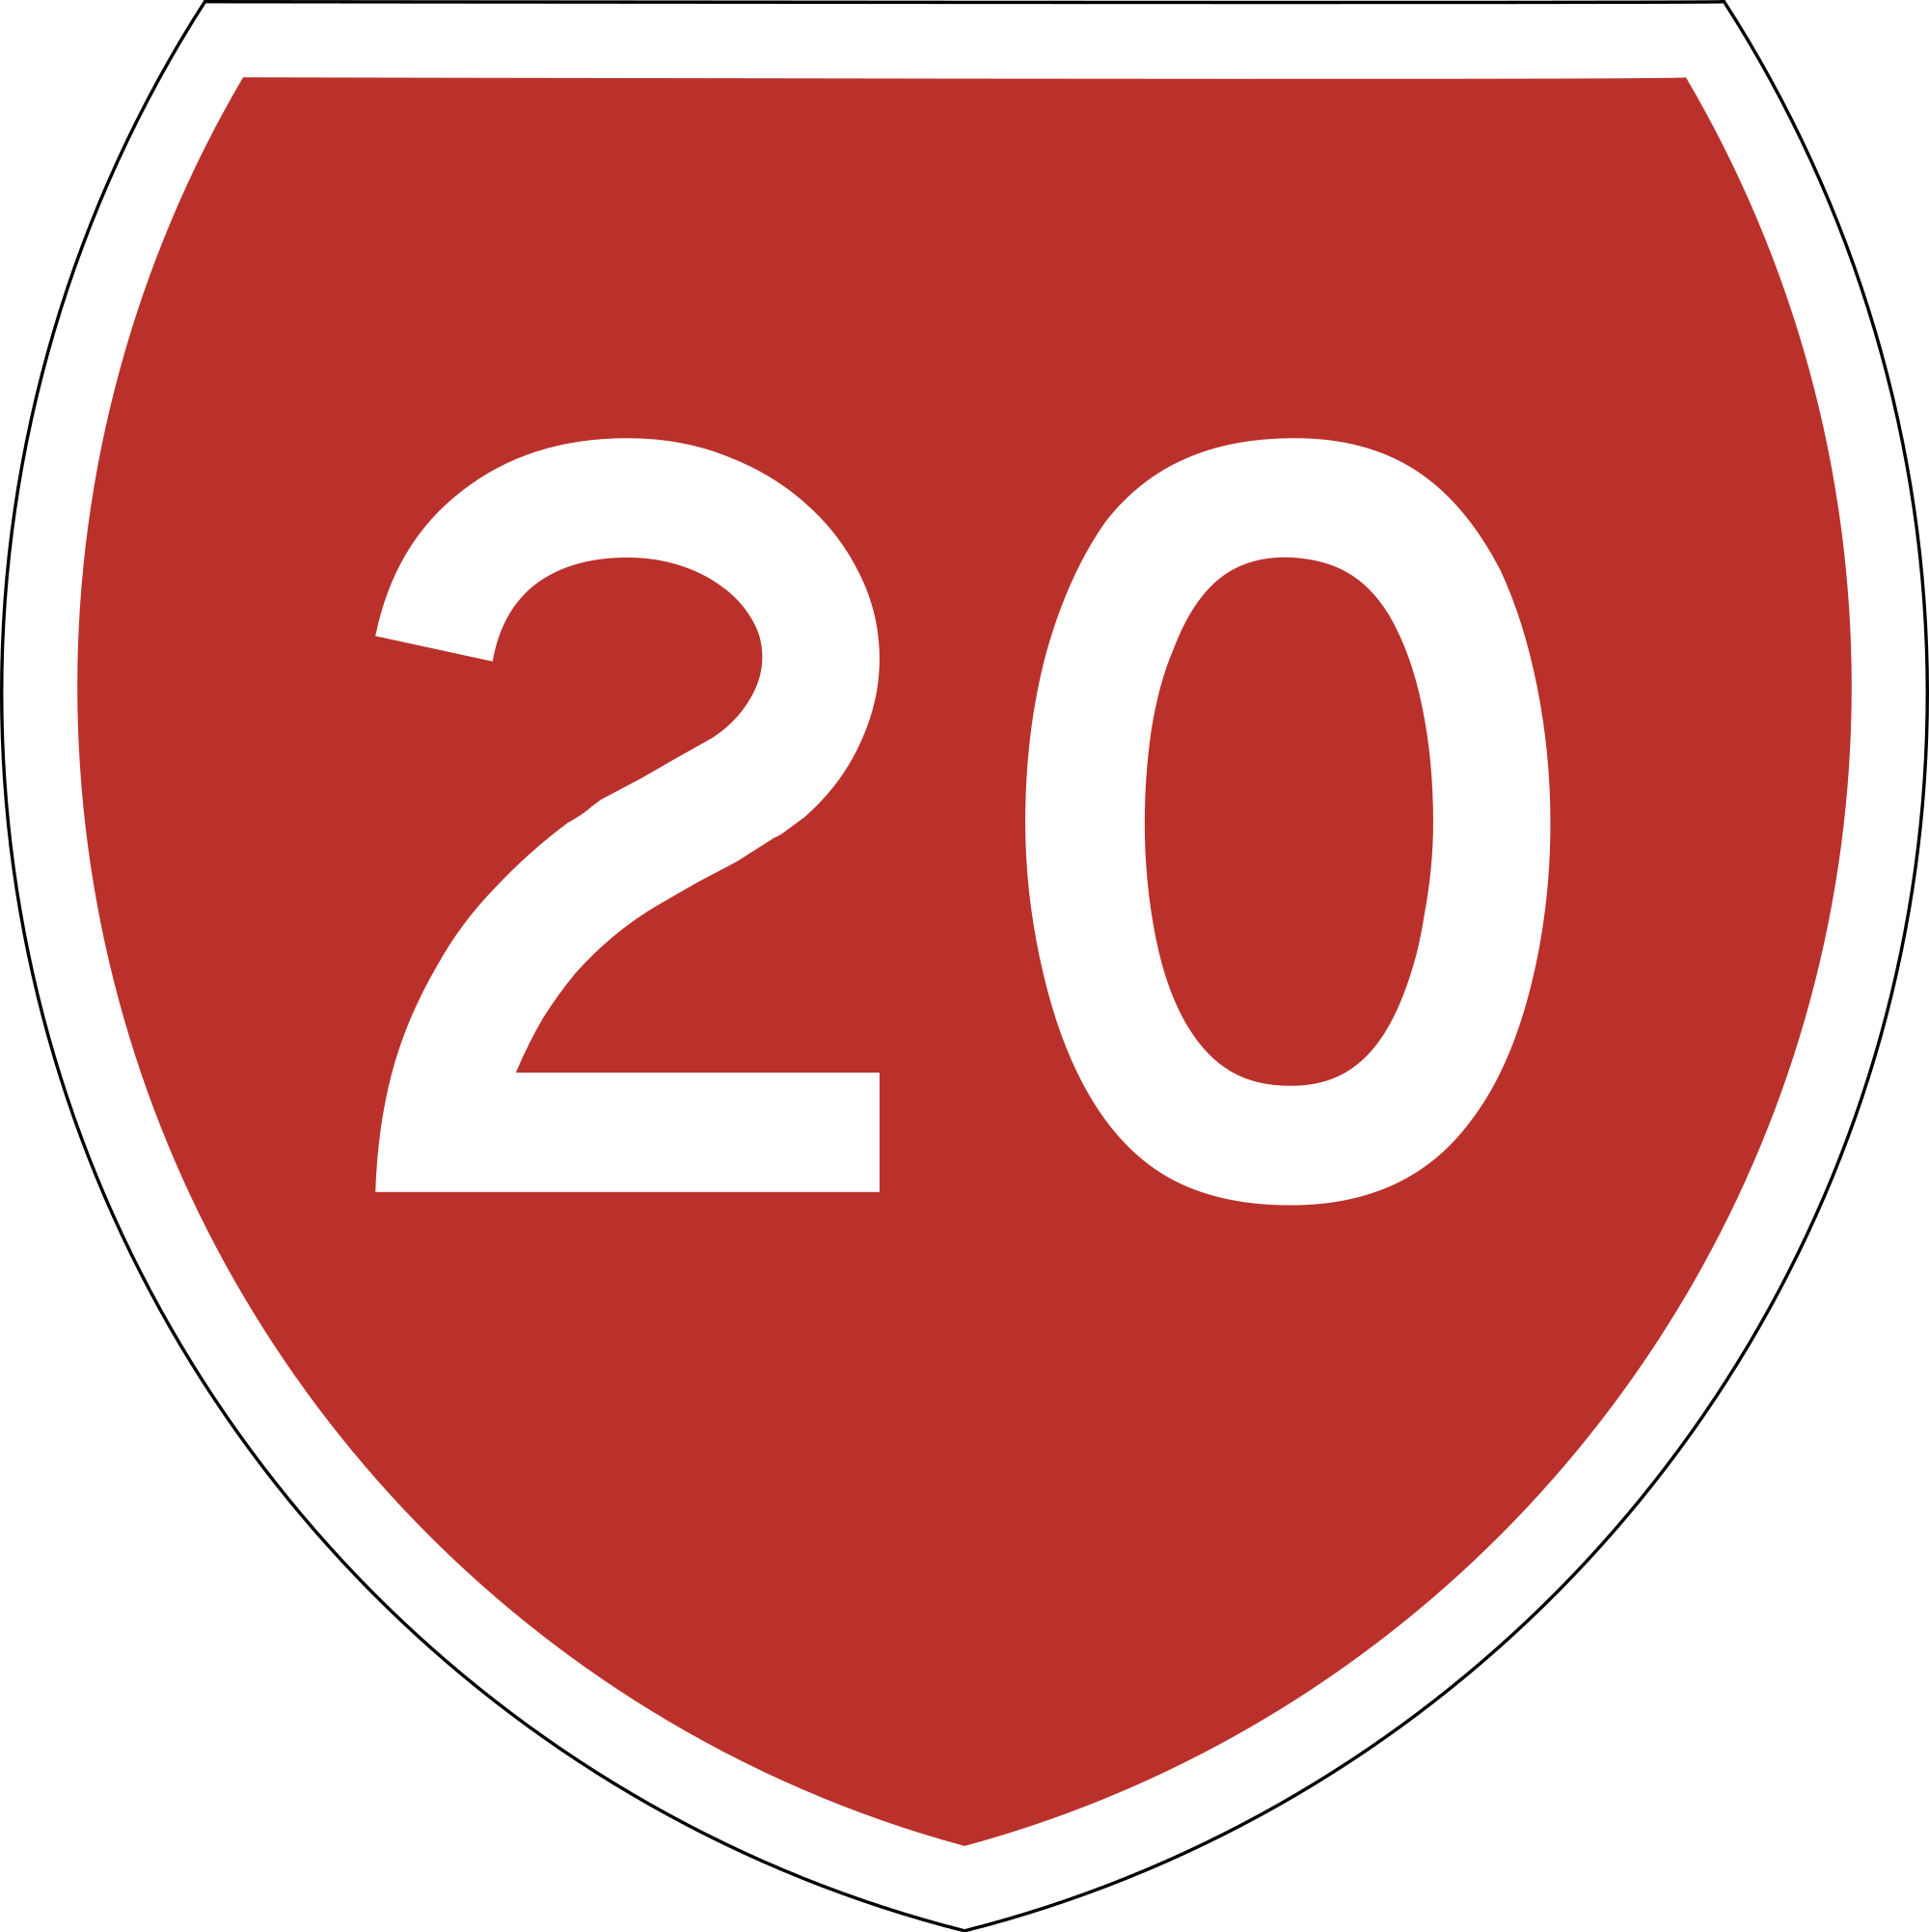 Roadsign vector red shield. File state highway nz